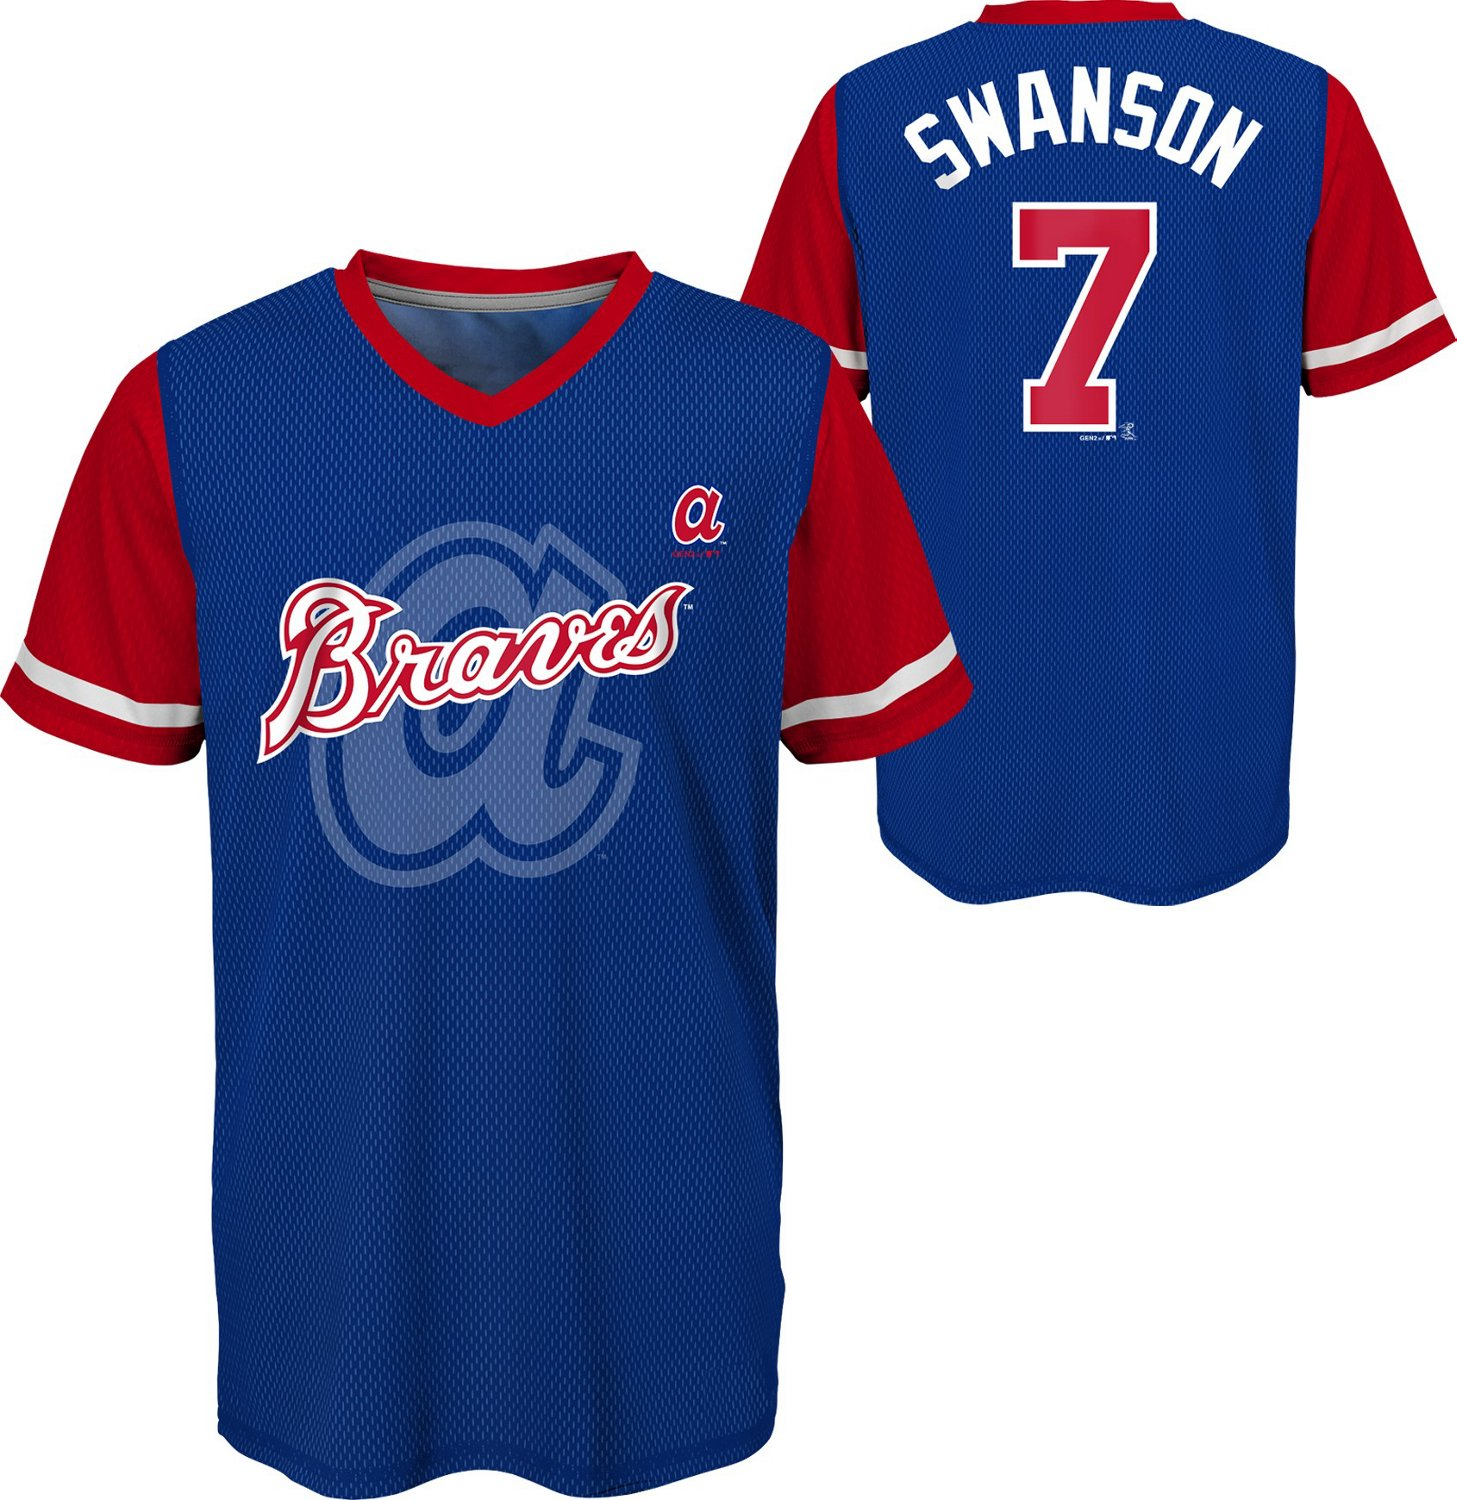 best loved f5dff b8716 Majestic Boys' Atlanta Braves Dansby Swanson Play Hard V-neck NN Jersey  T-shirt